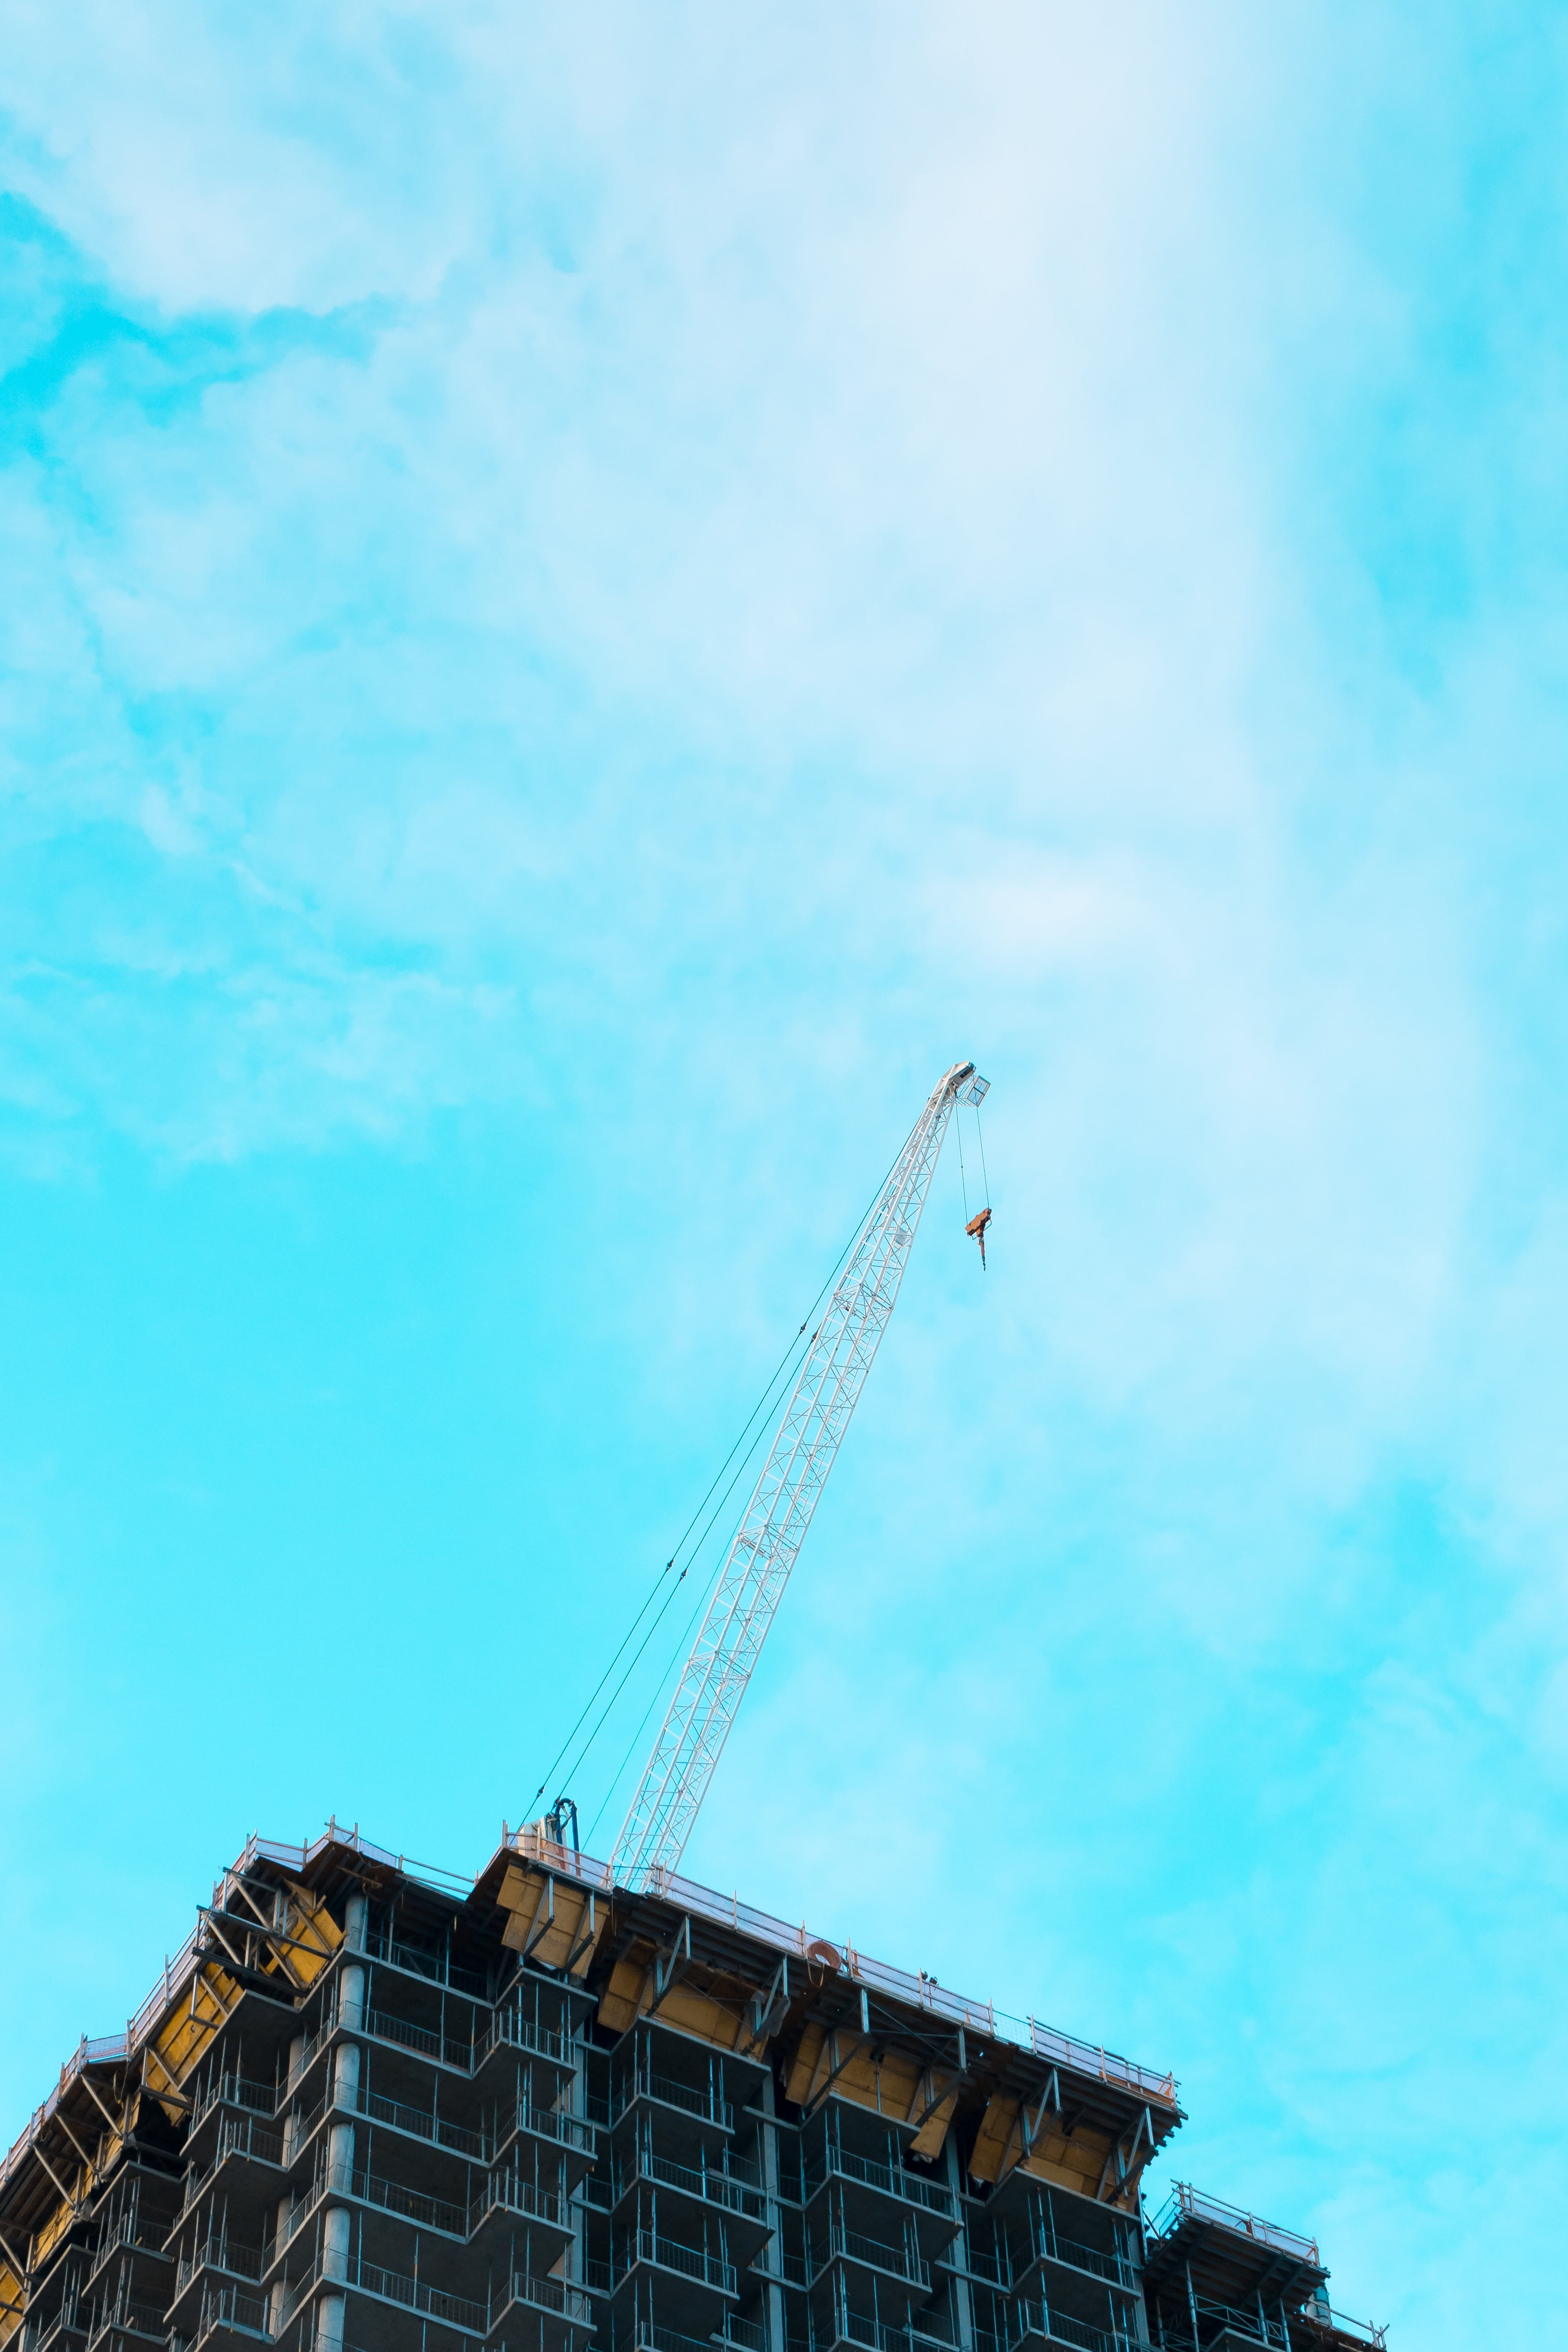 Free stock photo of building, concrete, constructing, construction